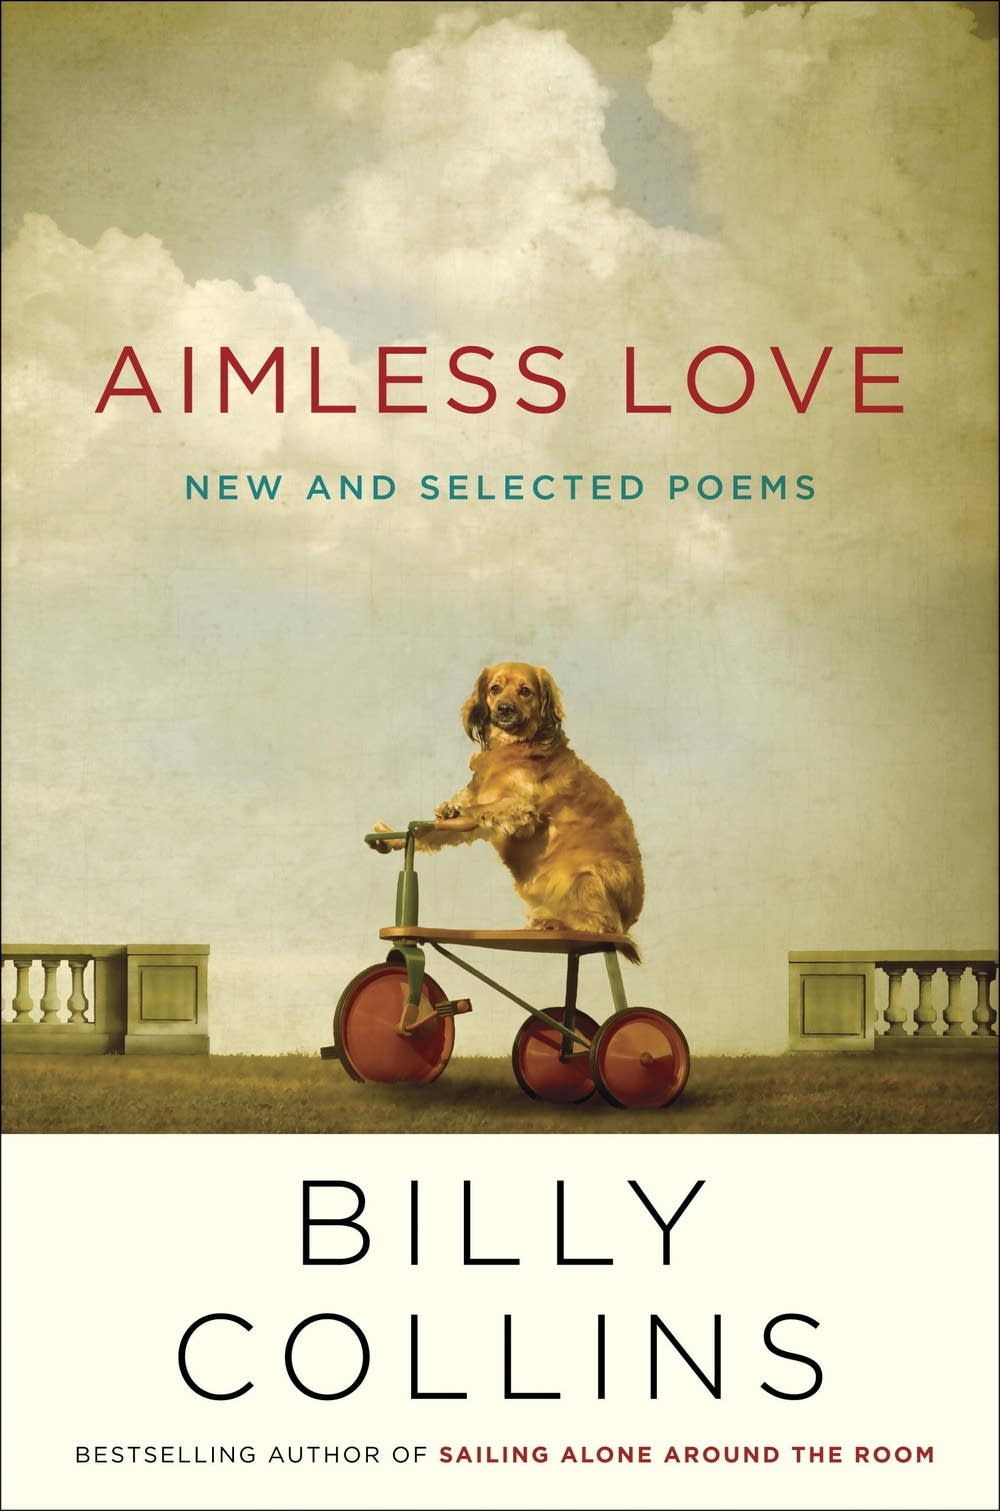 'Aimless Love' by Billy Collins